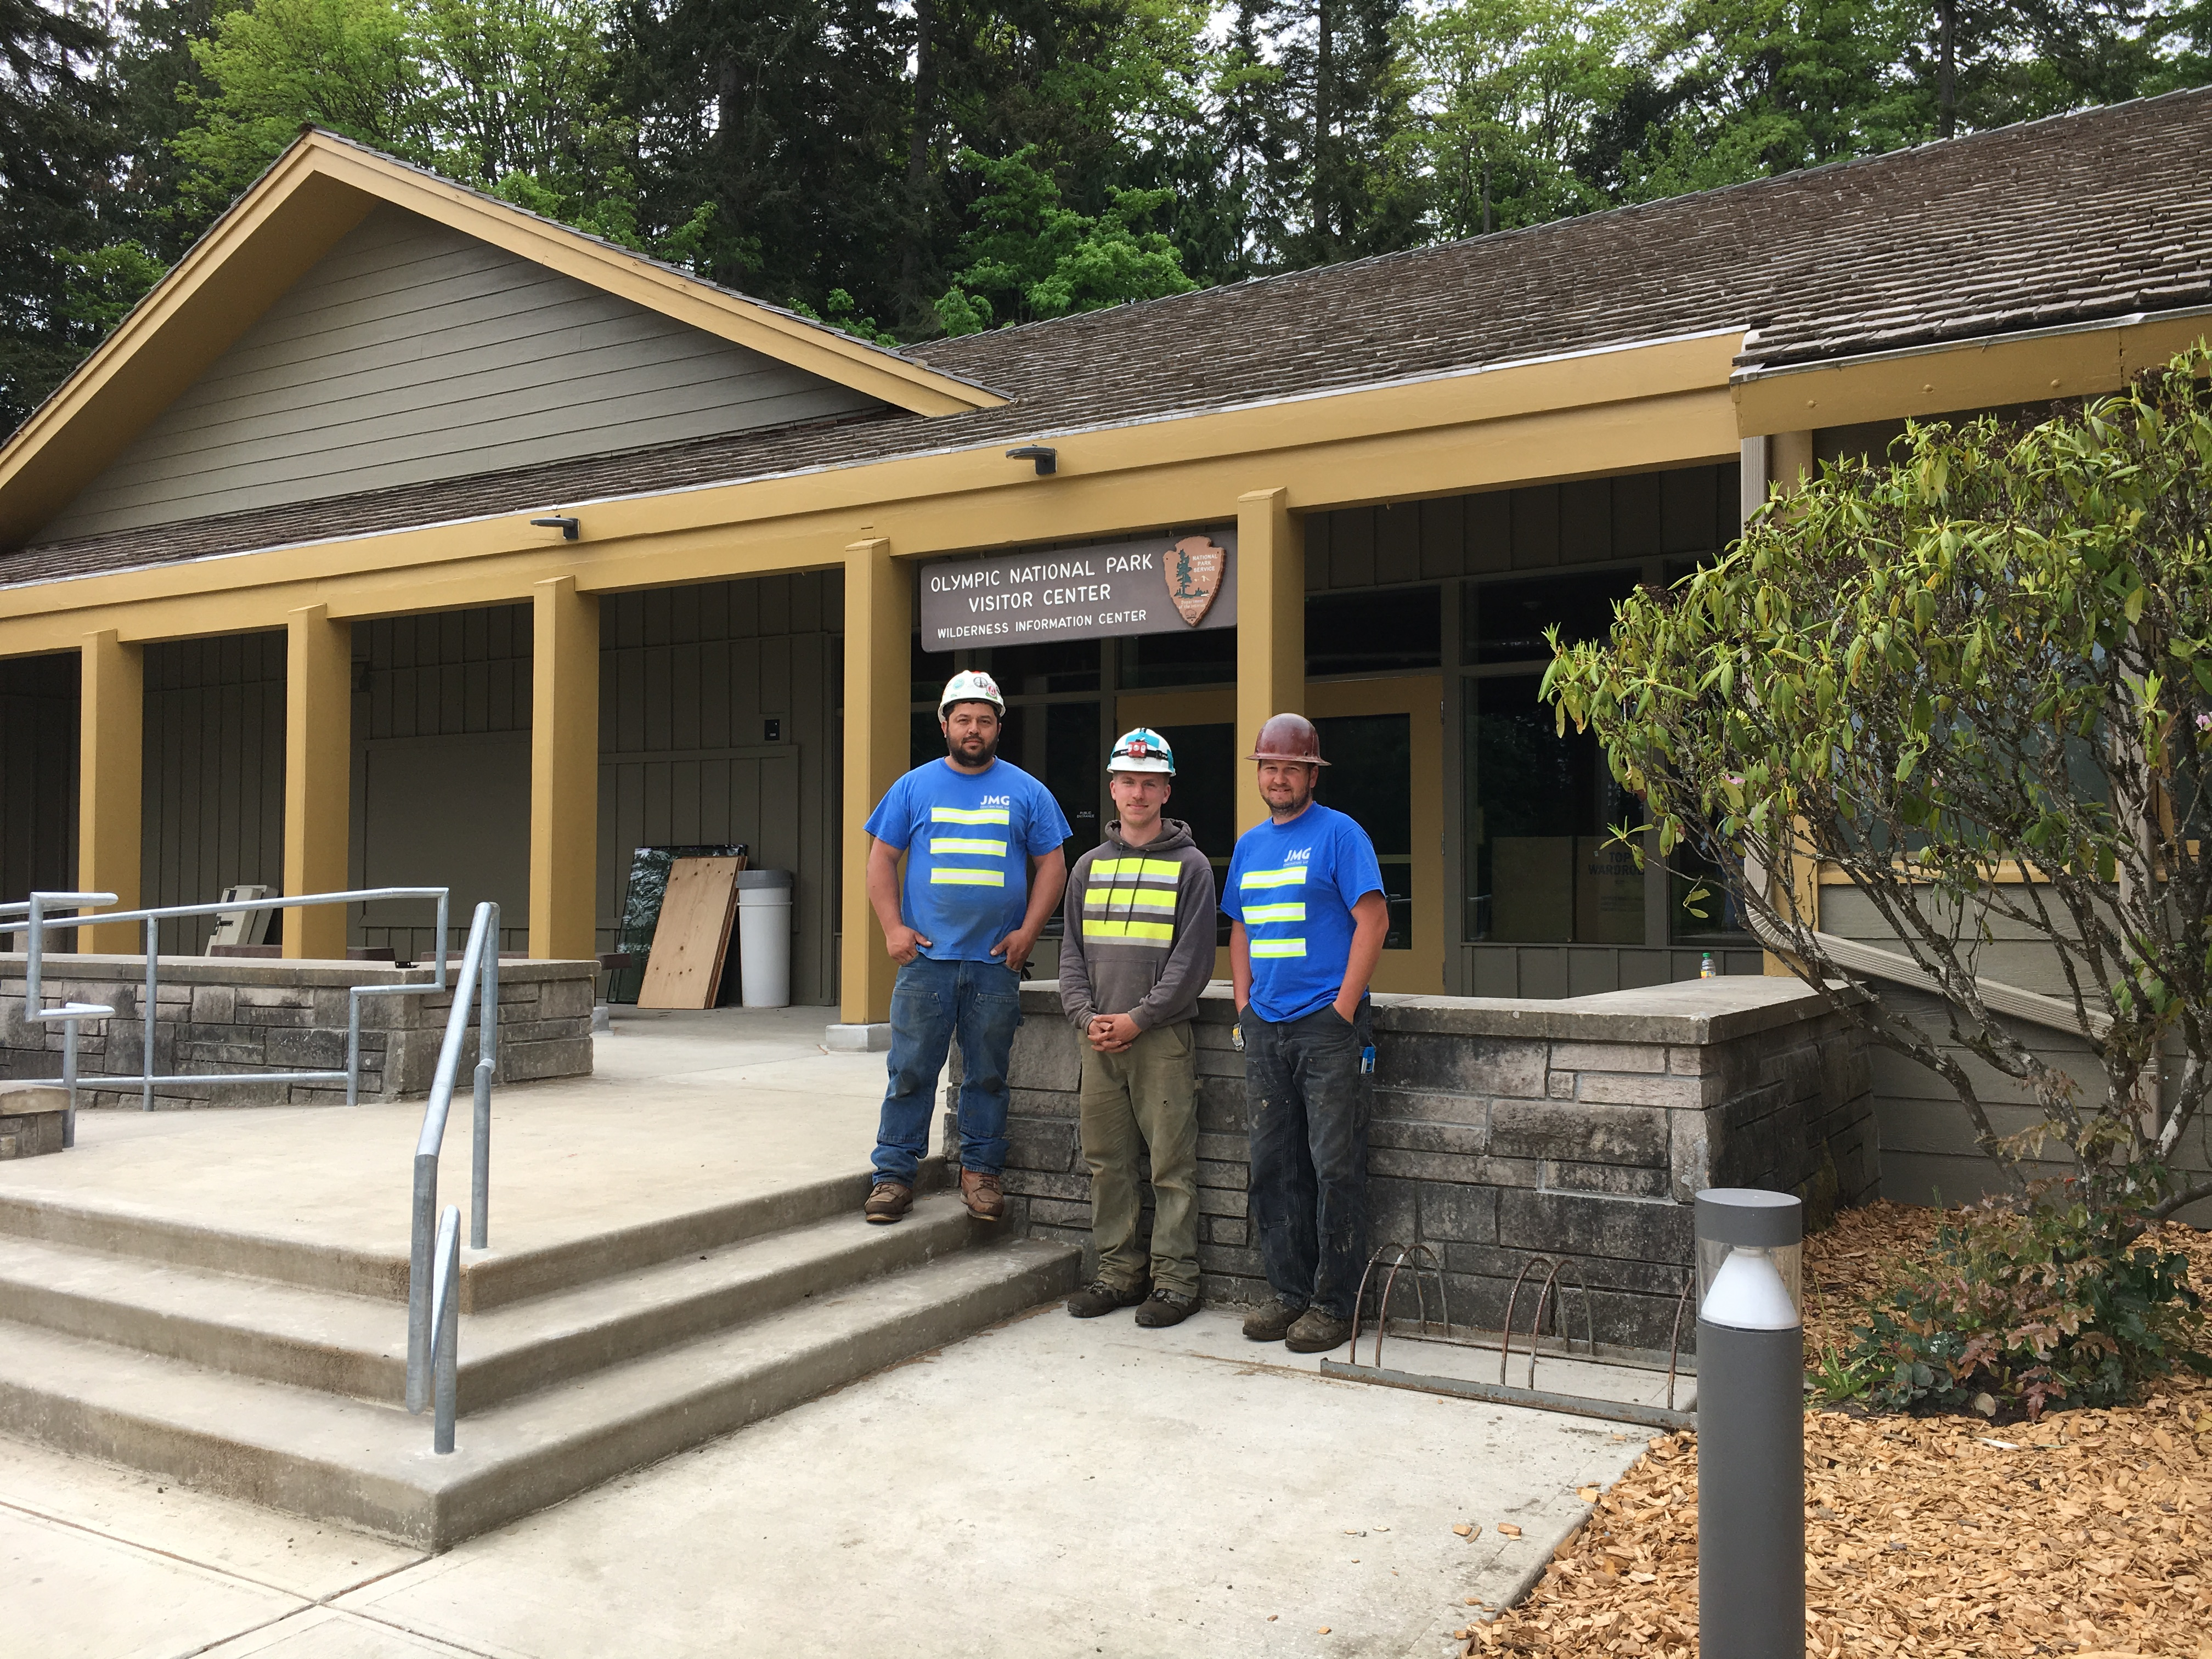 Construction workers standing in front of renovated visitor center